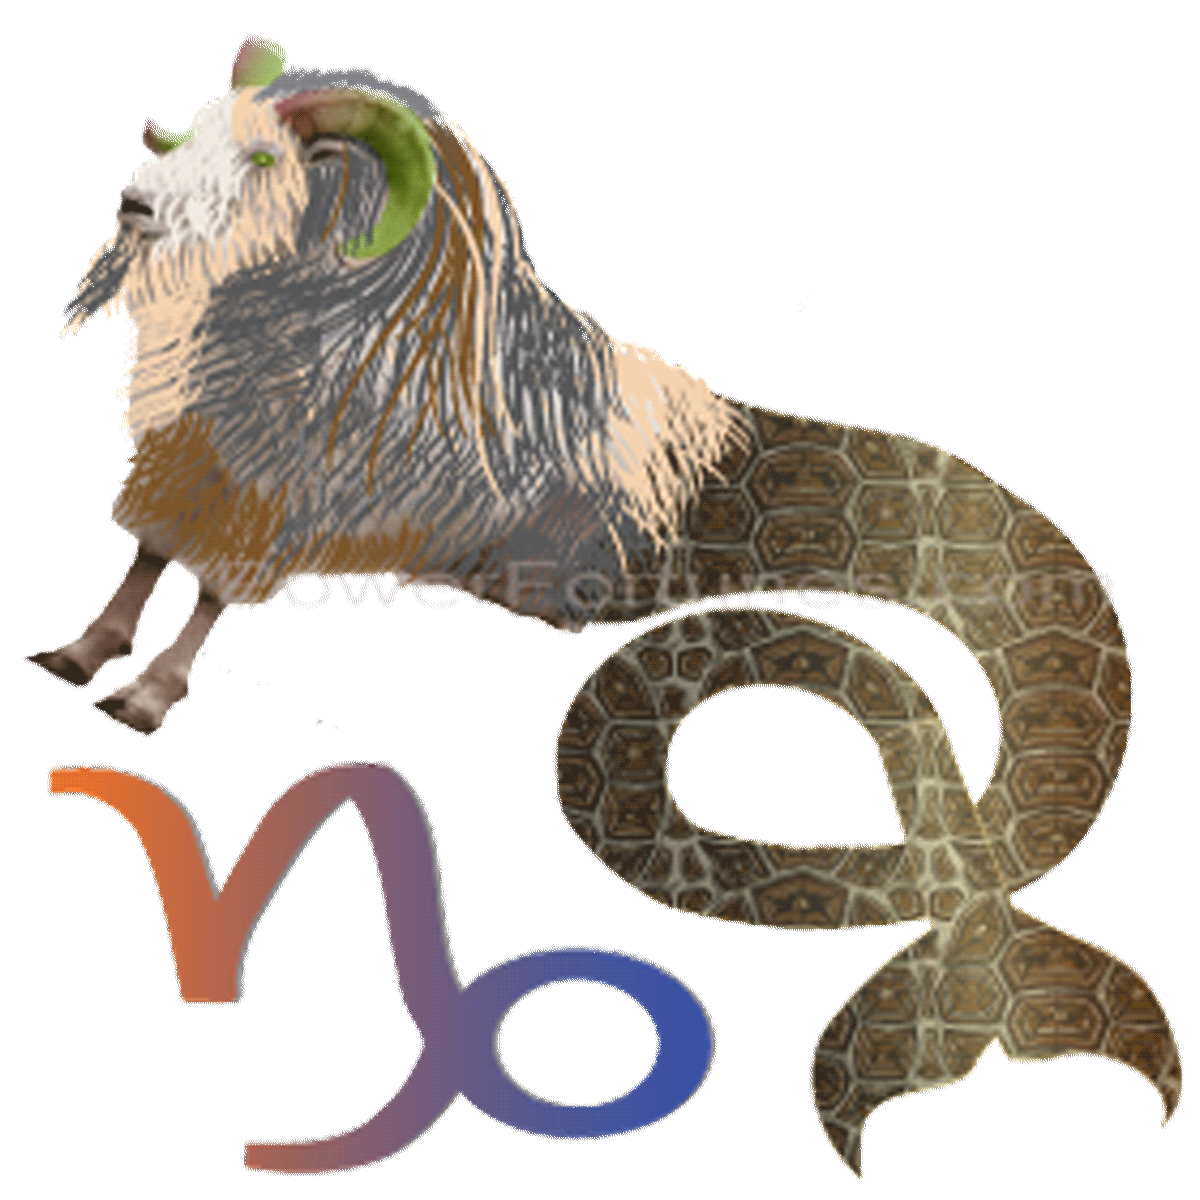 Monthly horoscopes for Capricorn, from 1st May to 31st May